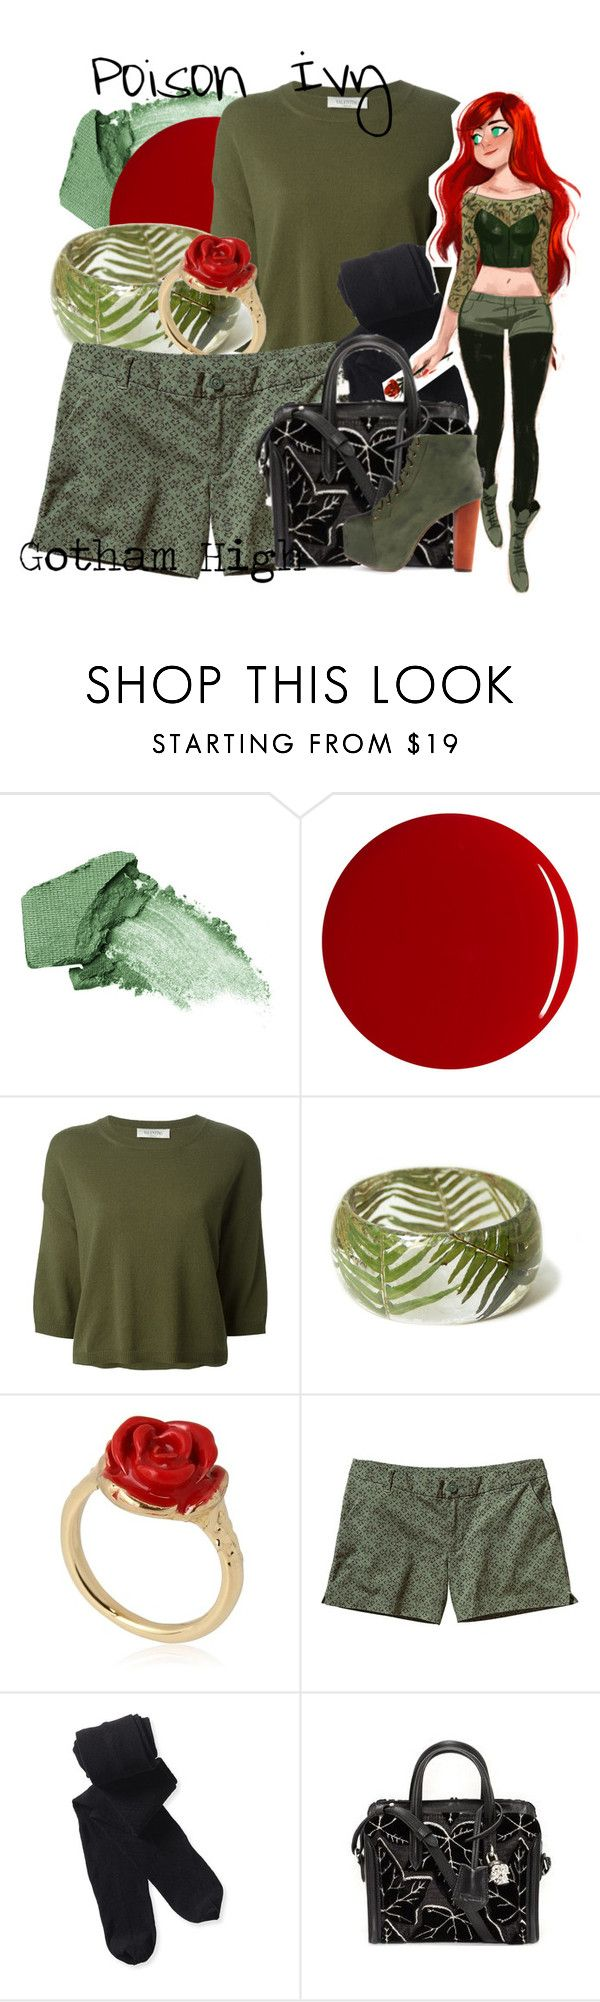 """""""Poison Ivy (Gotham High)"""" by amarie104 ❤ liked on Polyvore featuring Urban Decay, RGB, Valentino, LeiVanKash, Patagonia, Aéropostale, Alexander McQueen and Jeffrey Campbell"""